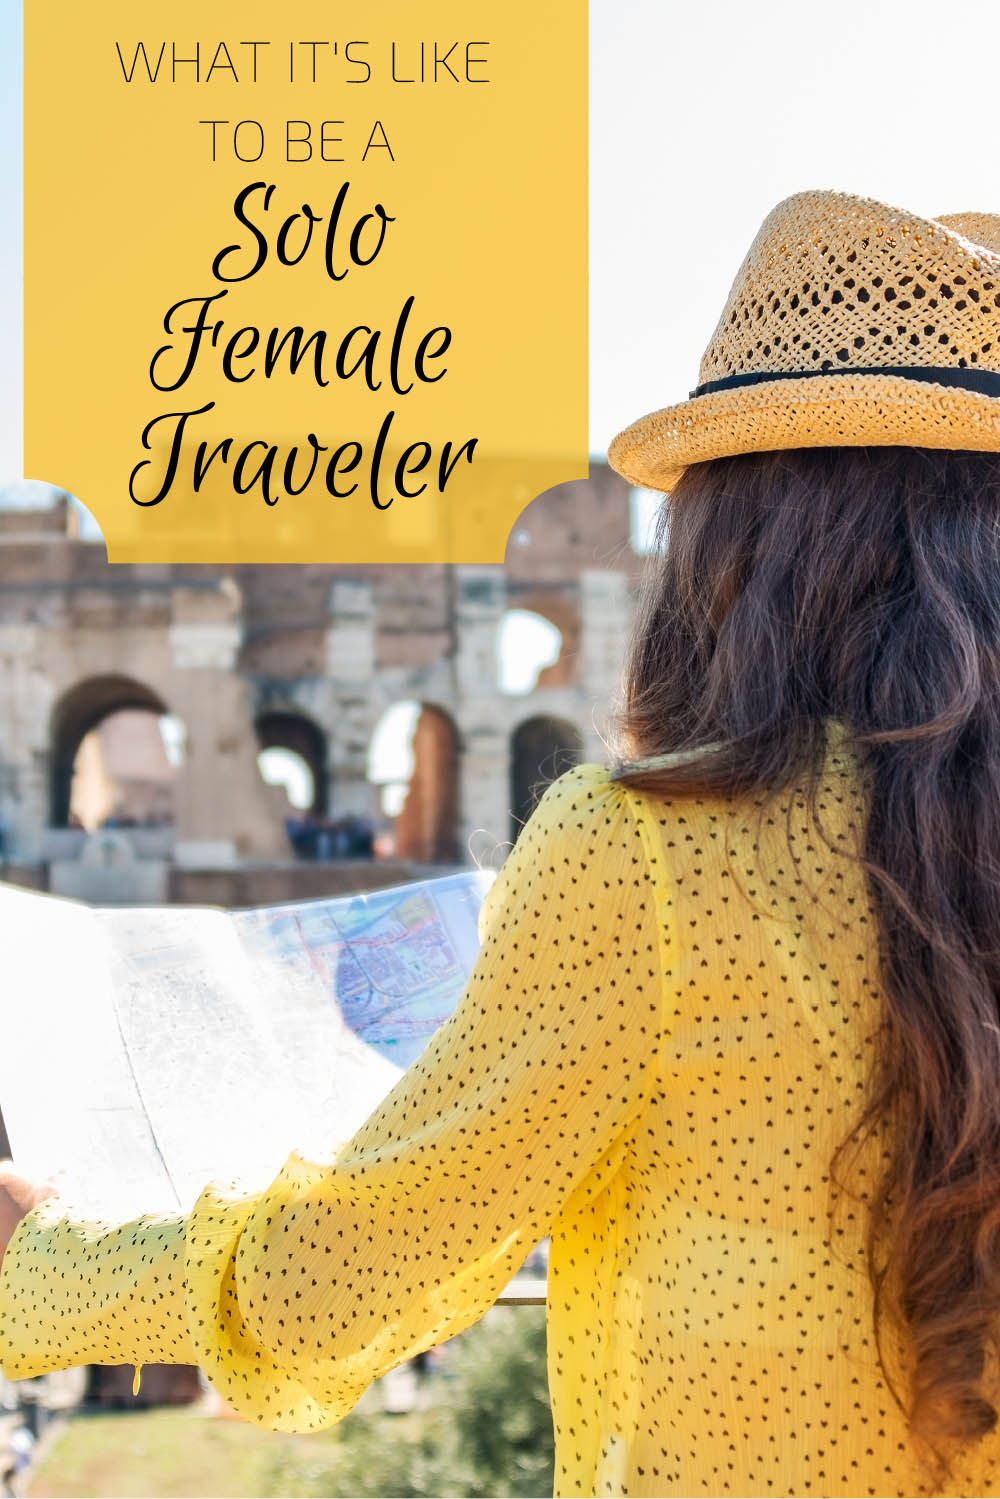 What it's like to be a Solo Female Traveler.